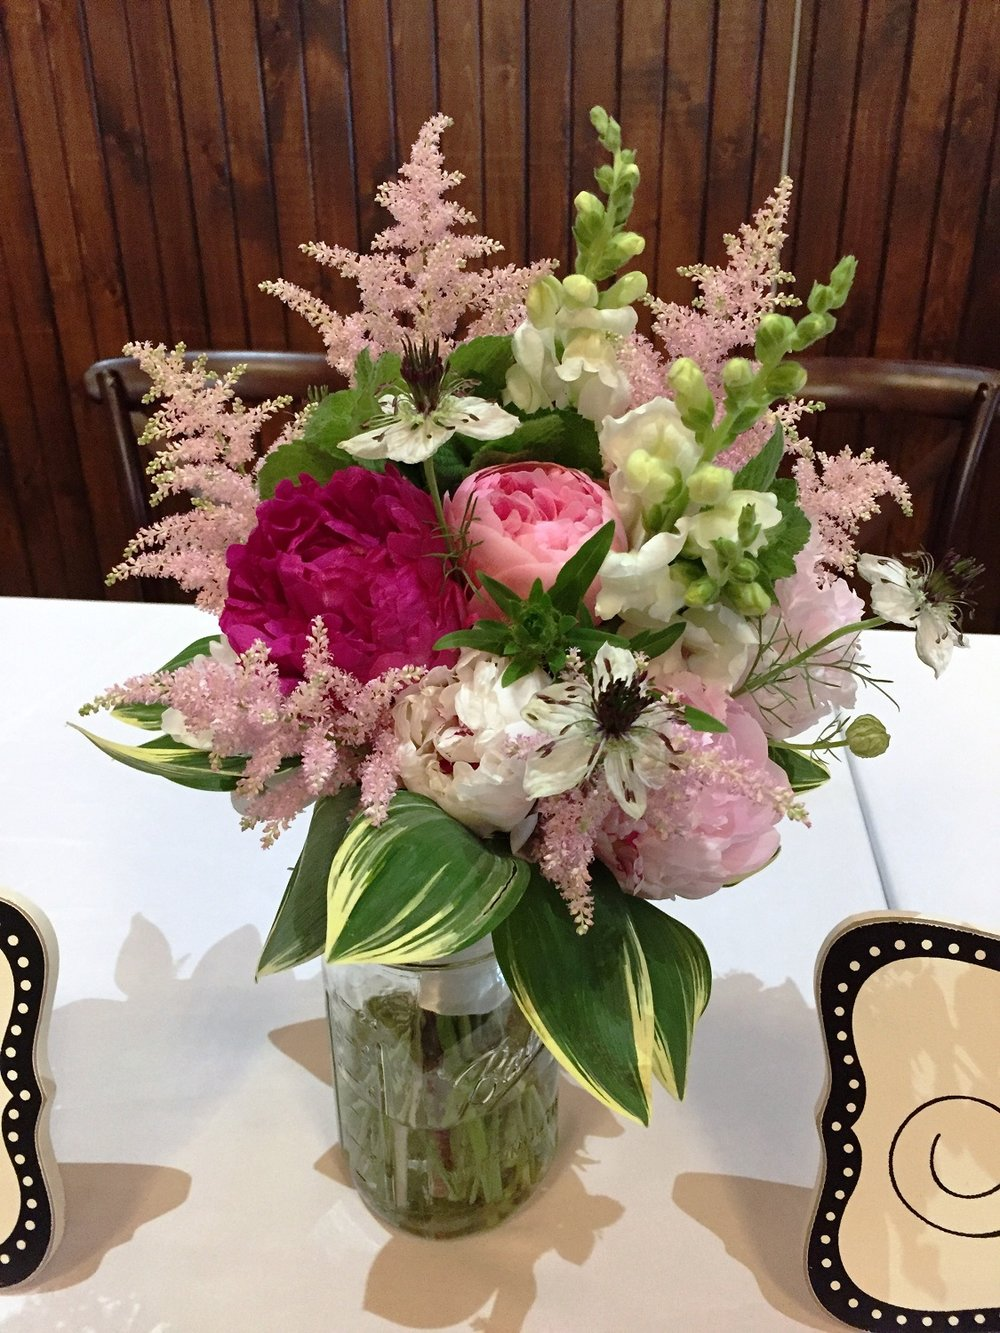 Astilbe, snapdragon, peony, love-in-a-mist, variegated solomon seal